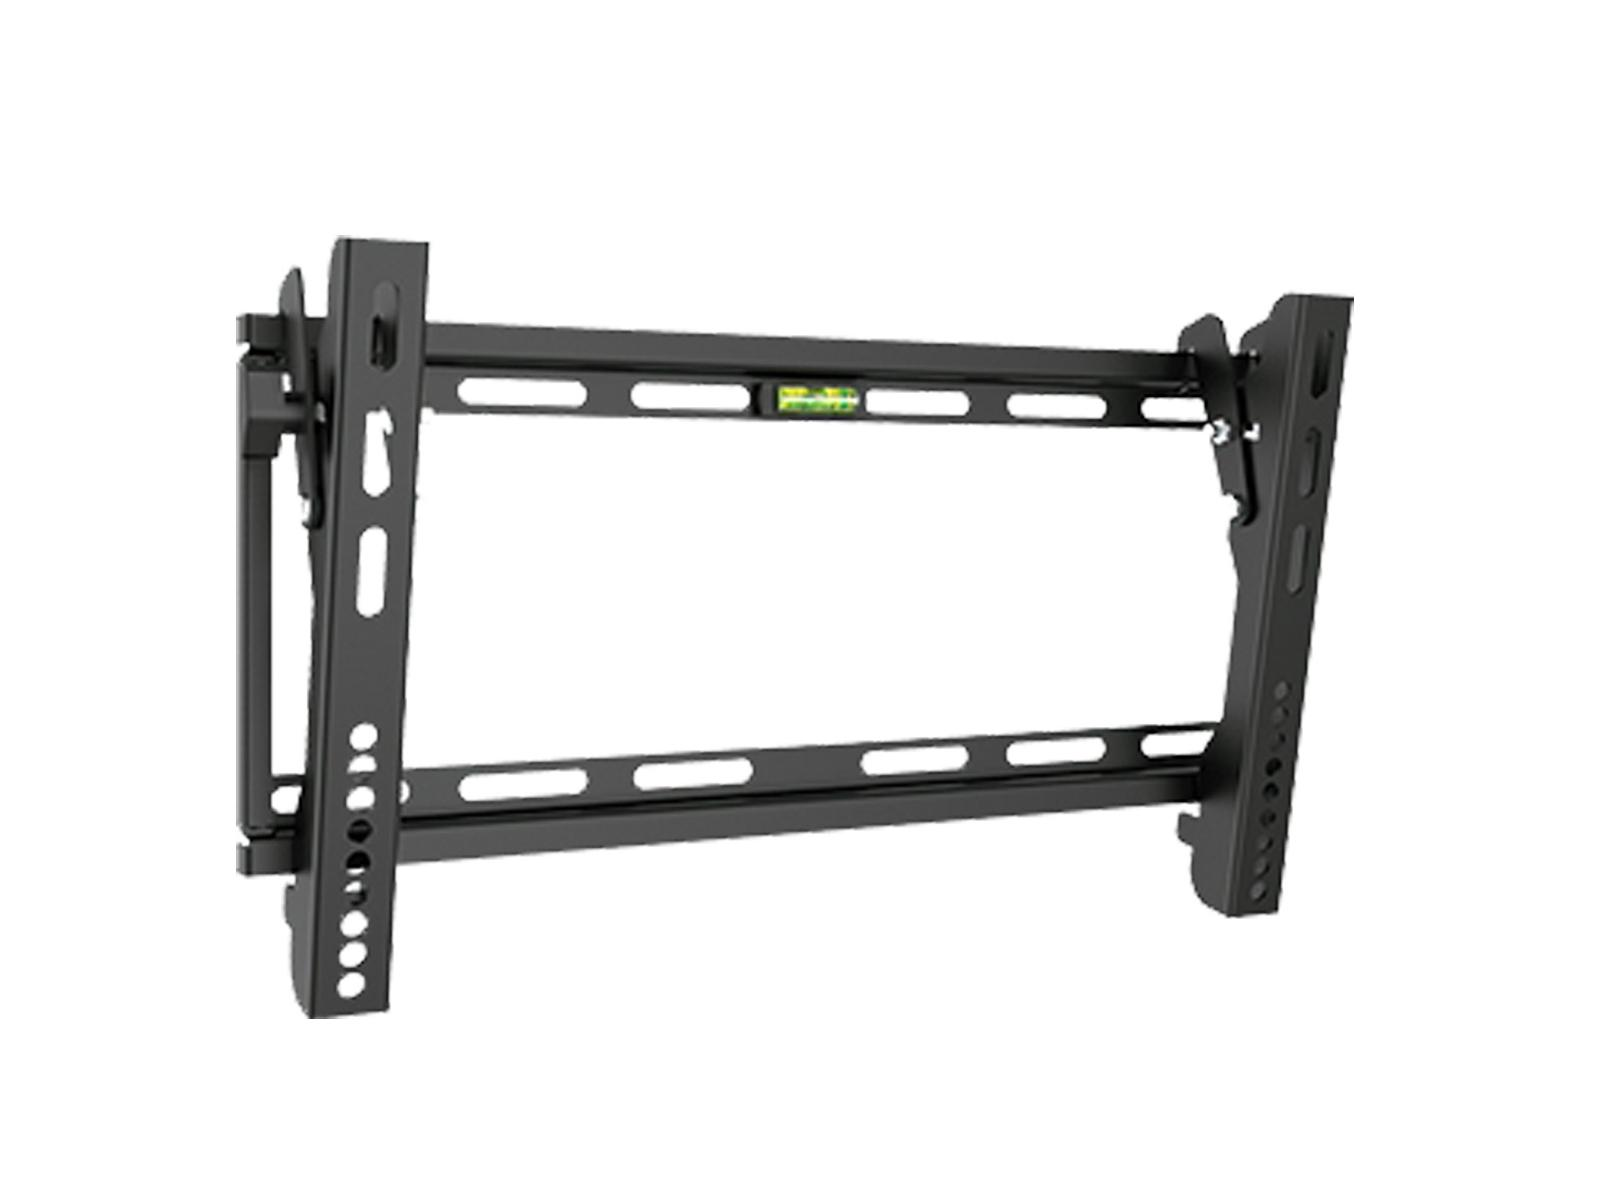 VZ-WM50 Wall Mount for 27 inch to 32 inch monitors by ViewZ